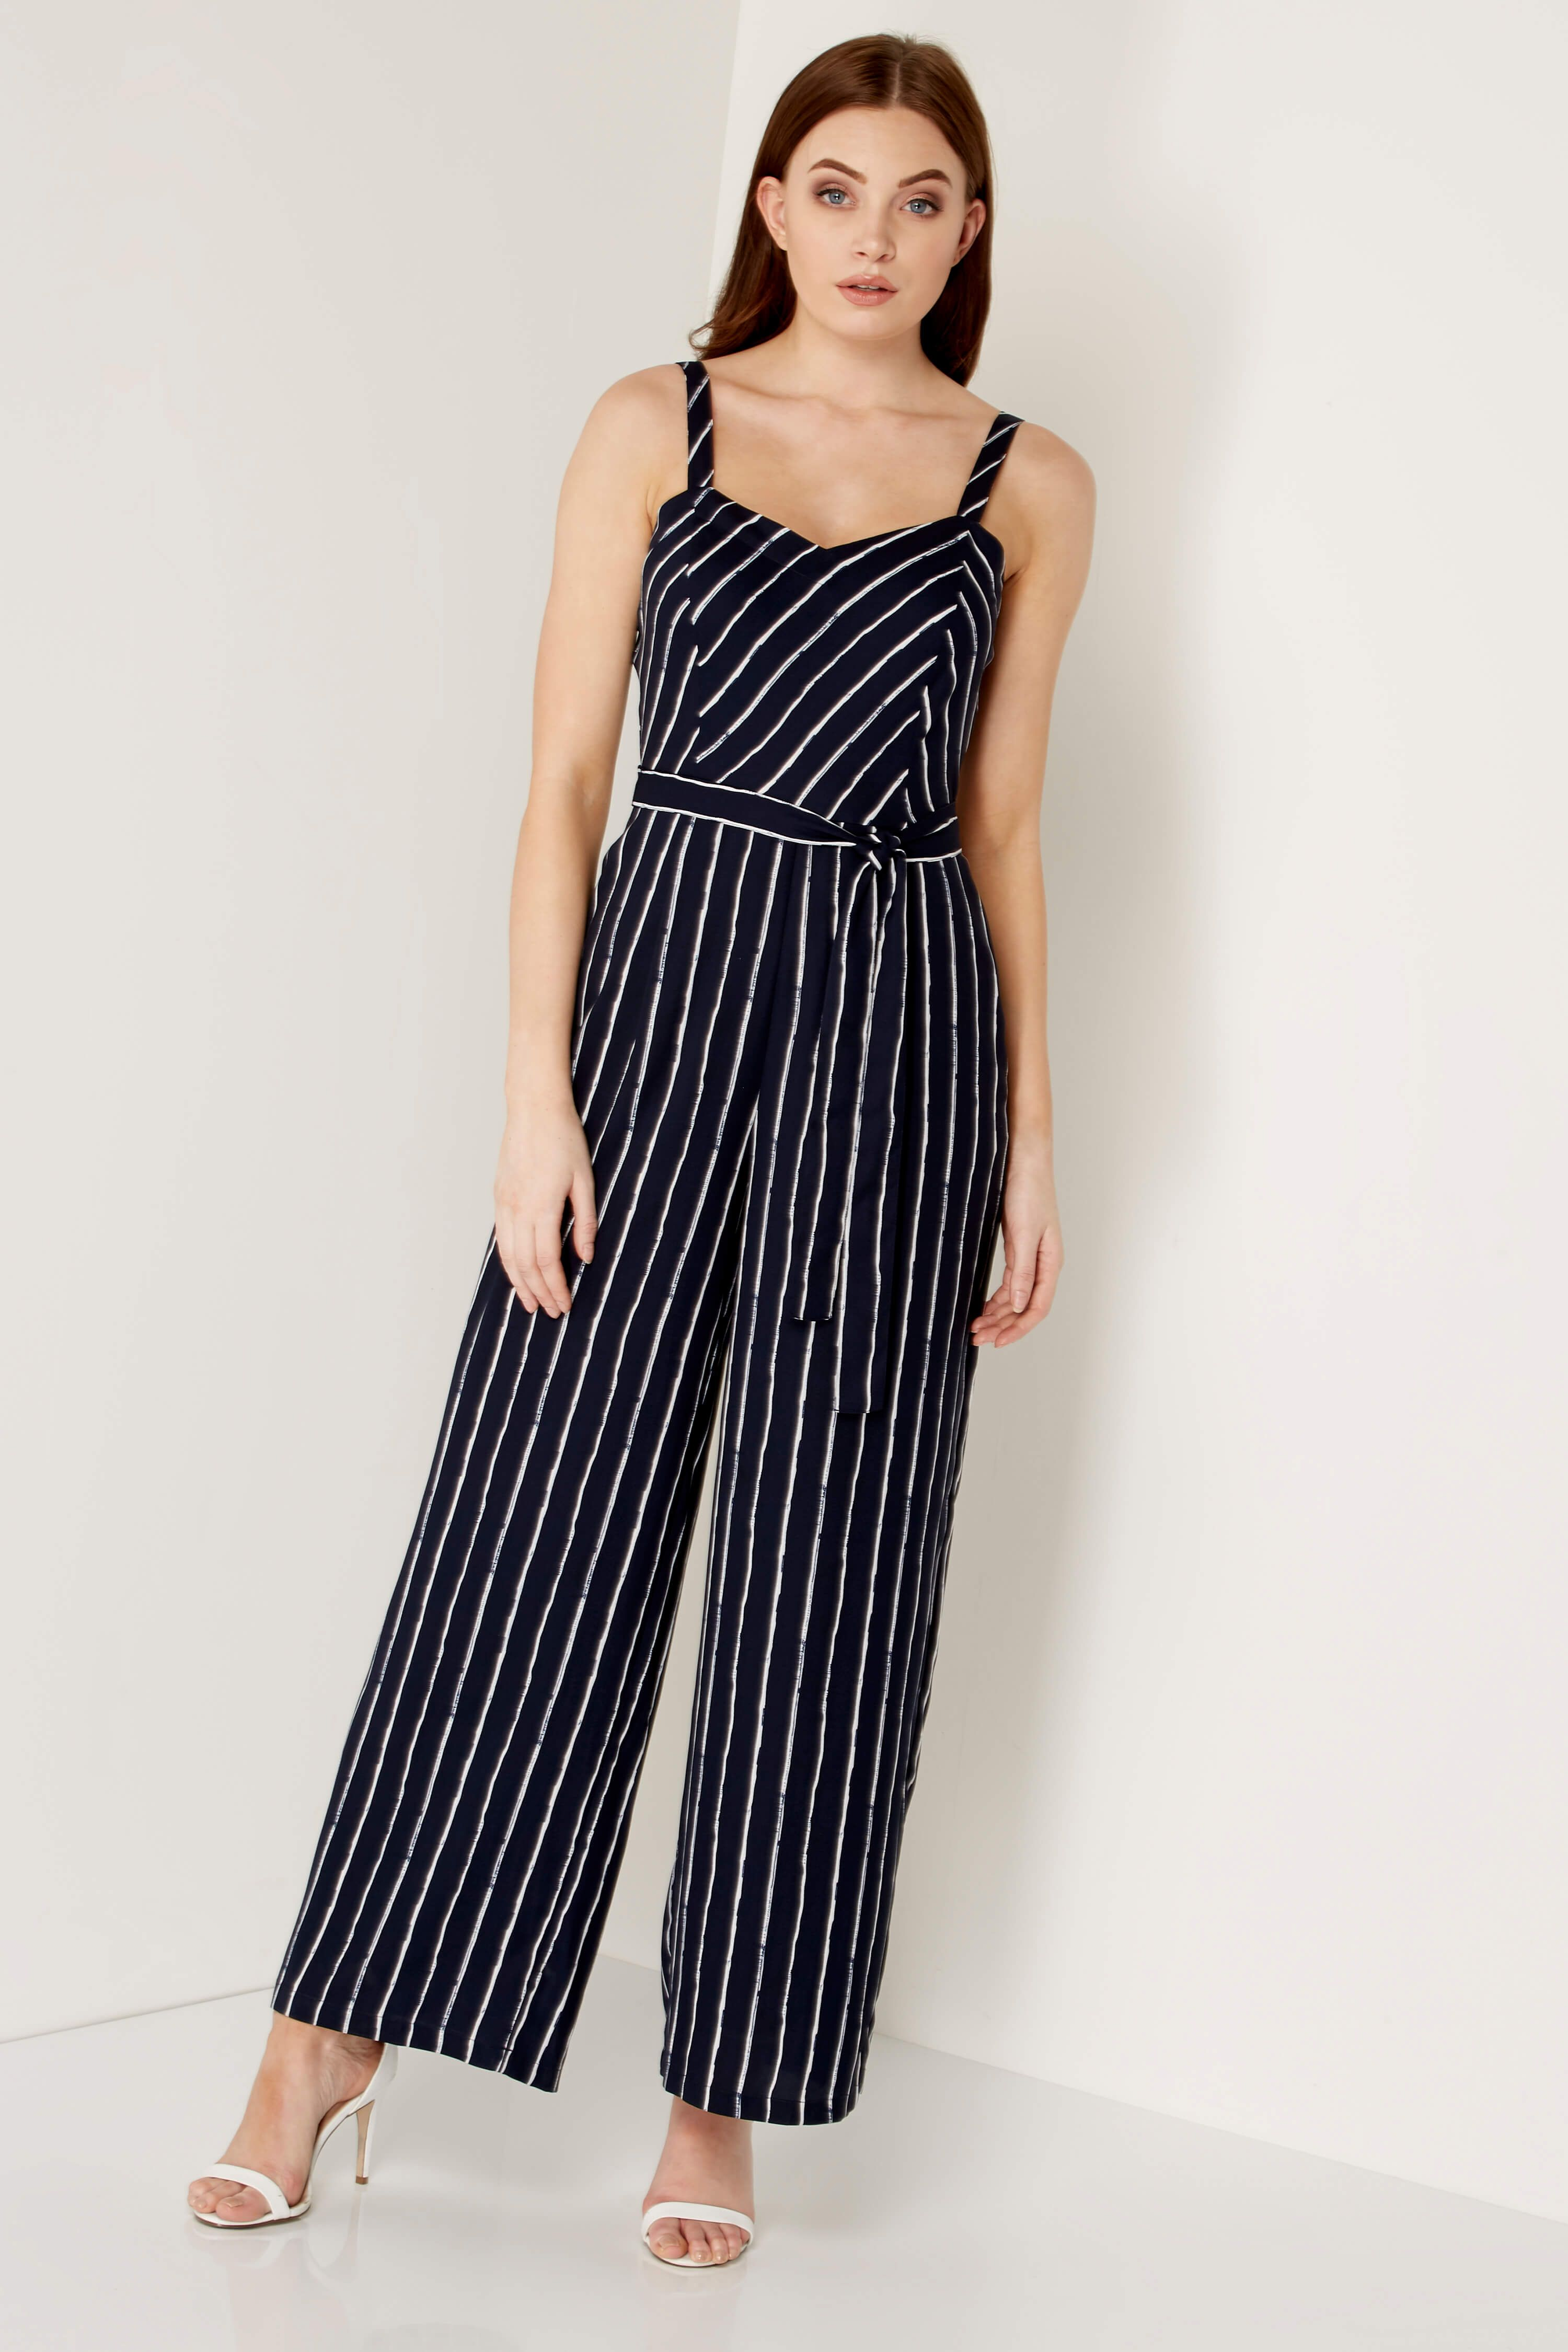 a9b1ff51c3a Stripe Sweetheart Neck Jumpsuit - Free UK Delivery - 10 12 14 16 18 20 -